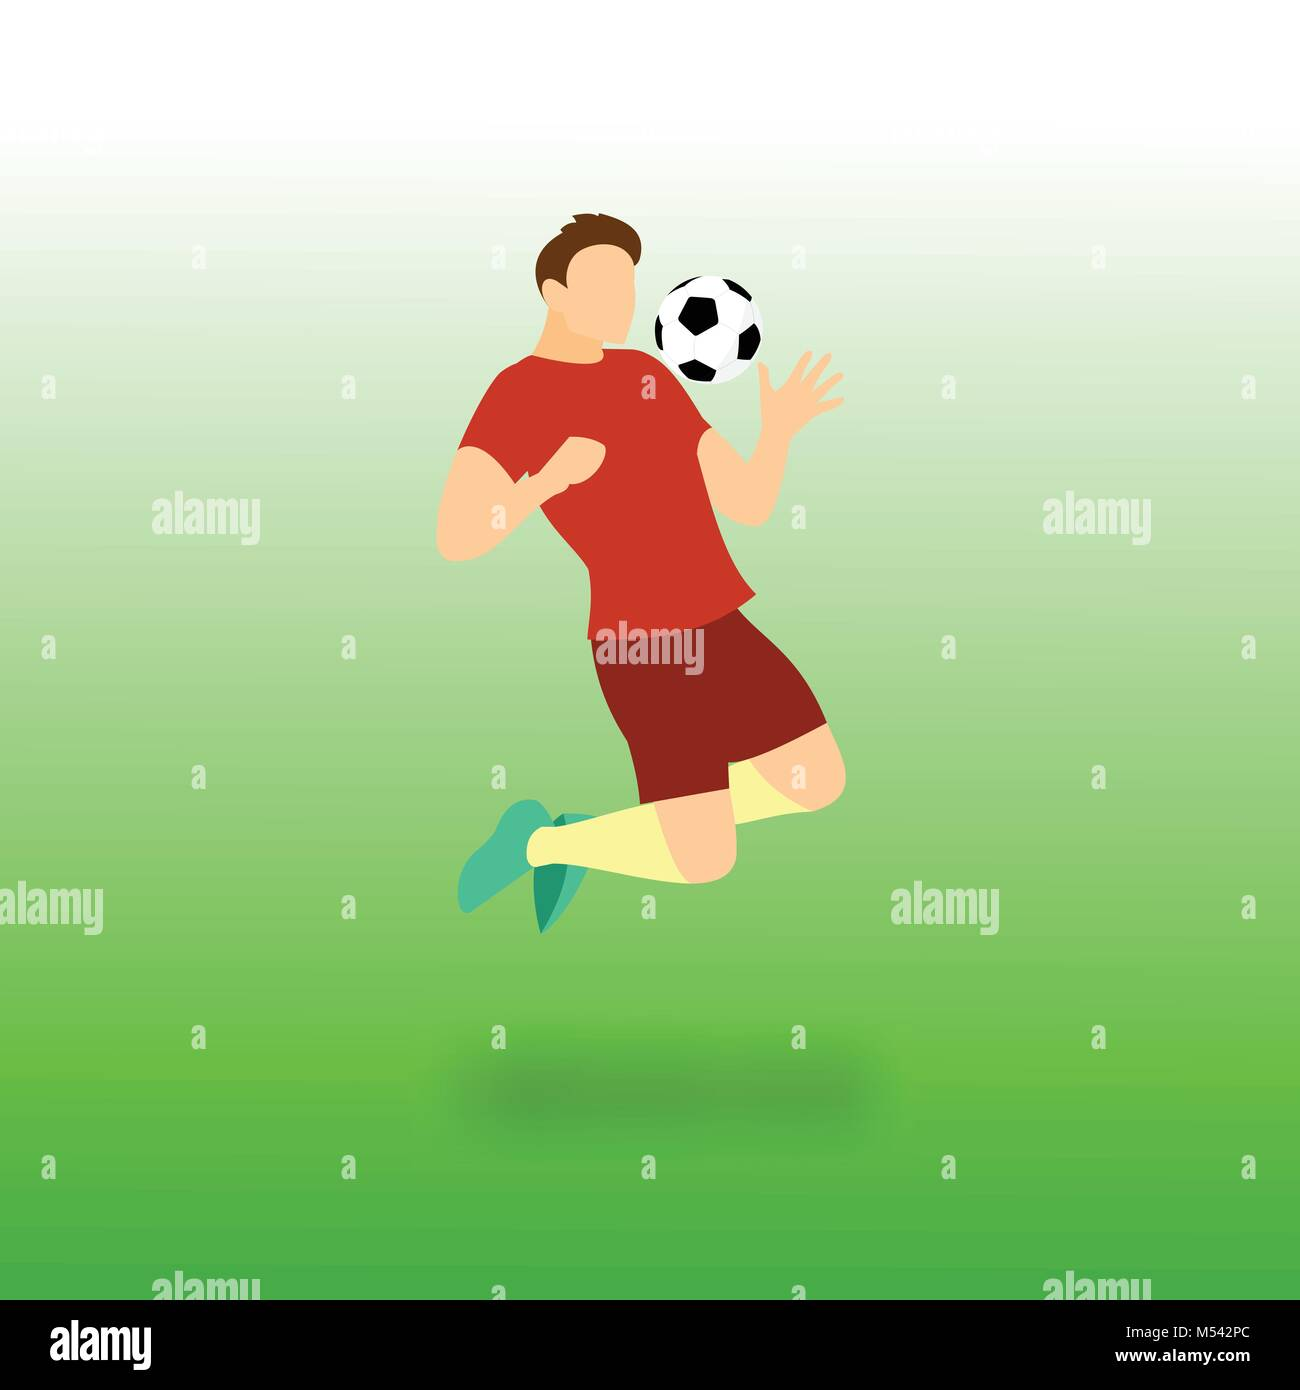 Chest Control Football Player Vector Illustration Graphic Design - Stock Vector